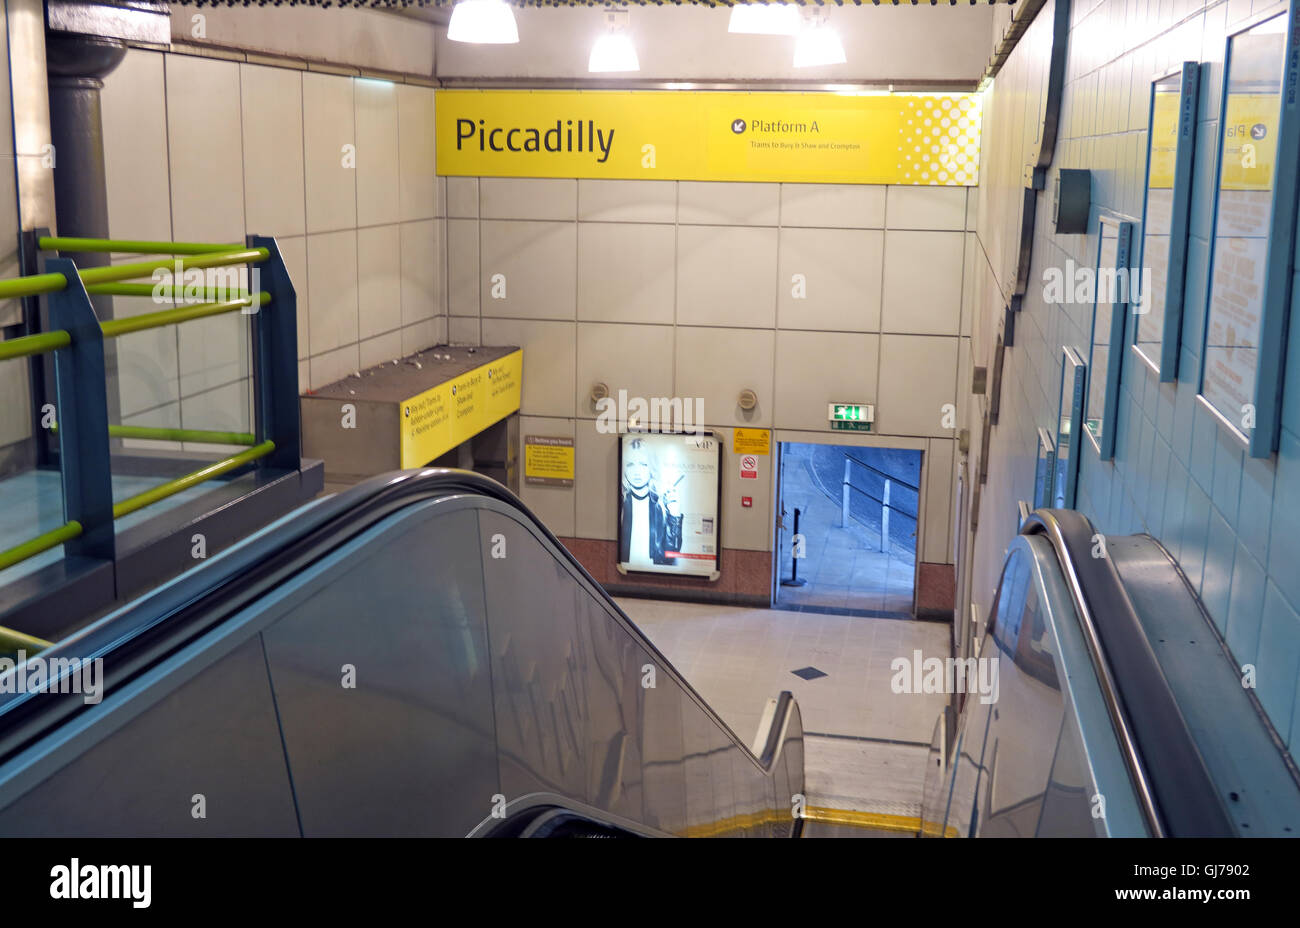 Piccadilly Metrolink station, Manchester,  North West England, UK M1 2QF - Stock Image